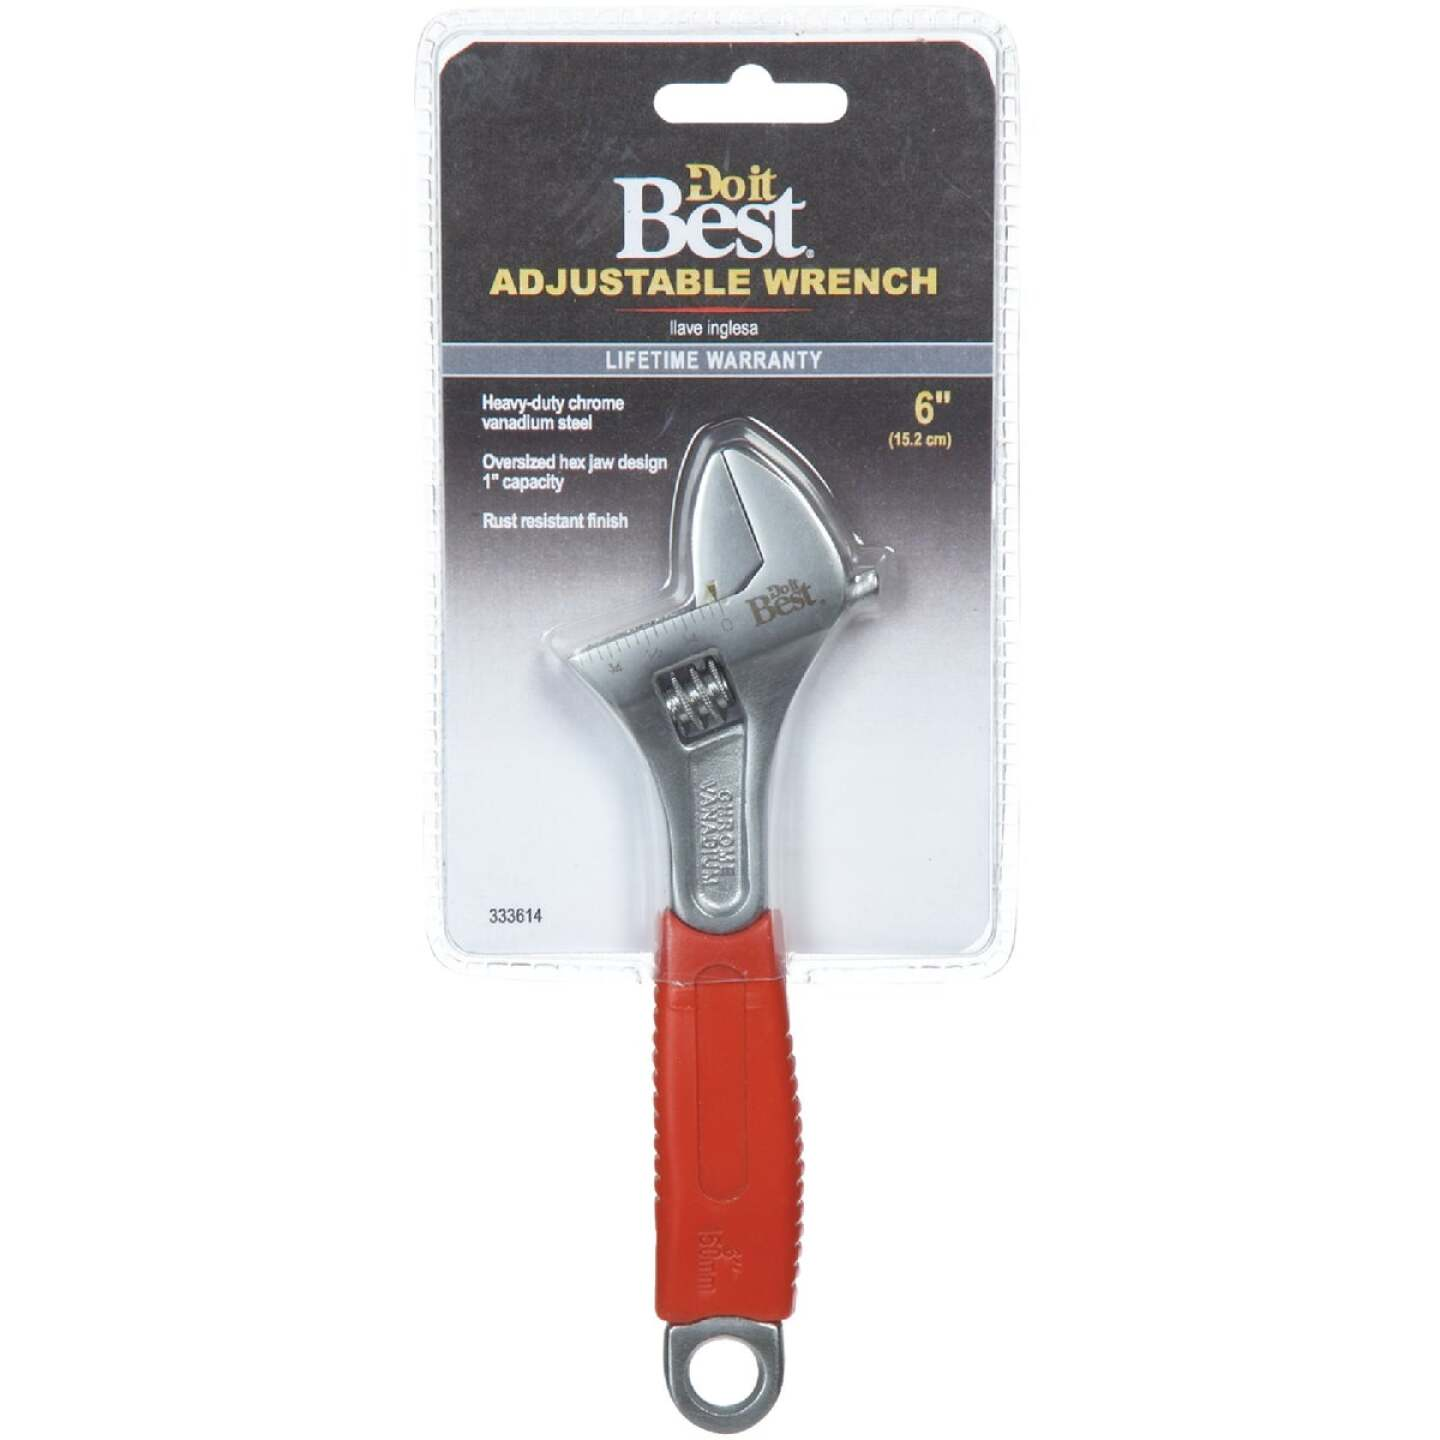 Do it Best 6 In. Adjustable Wrench Image 2